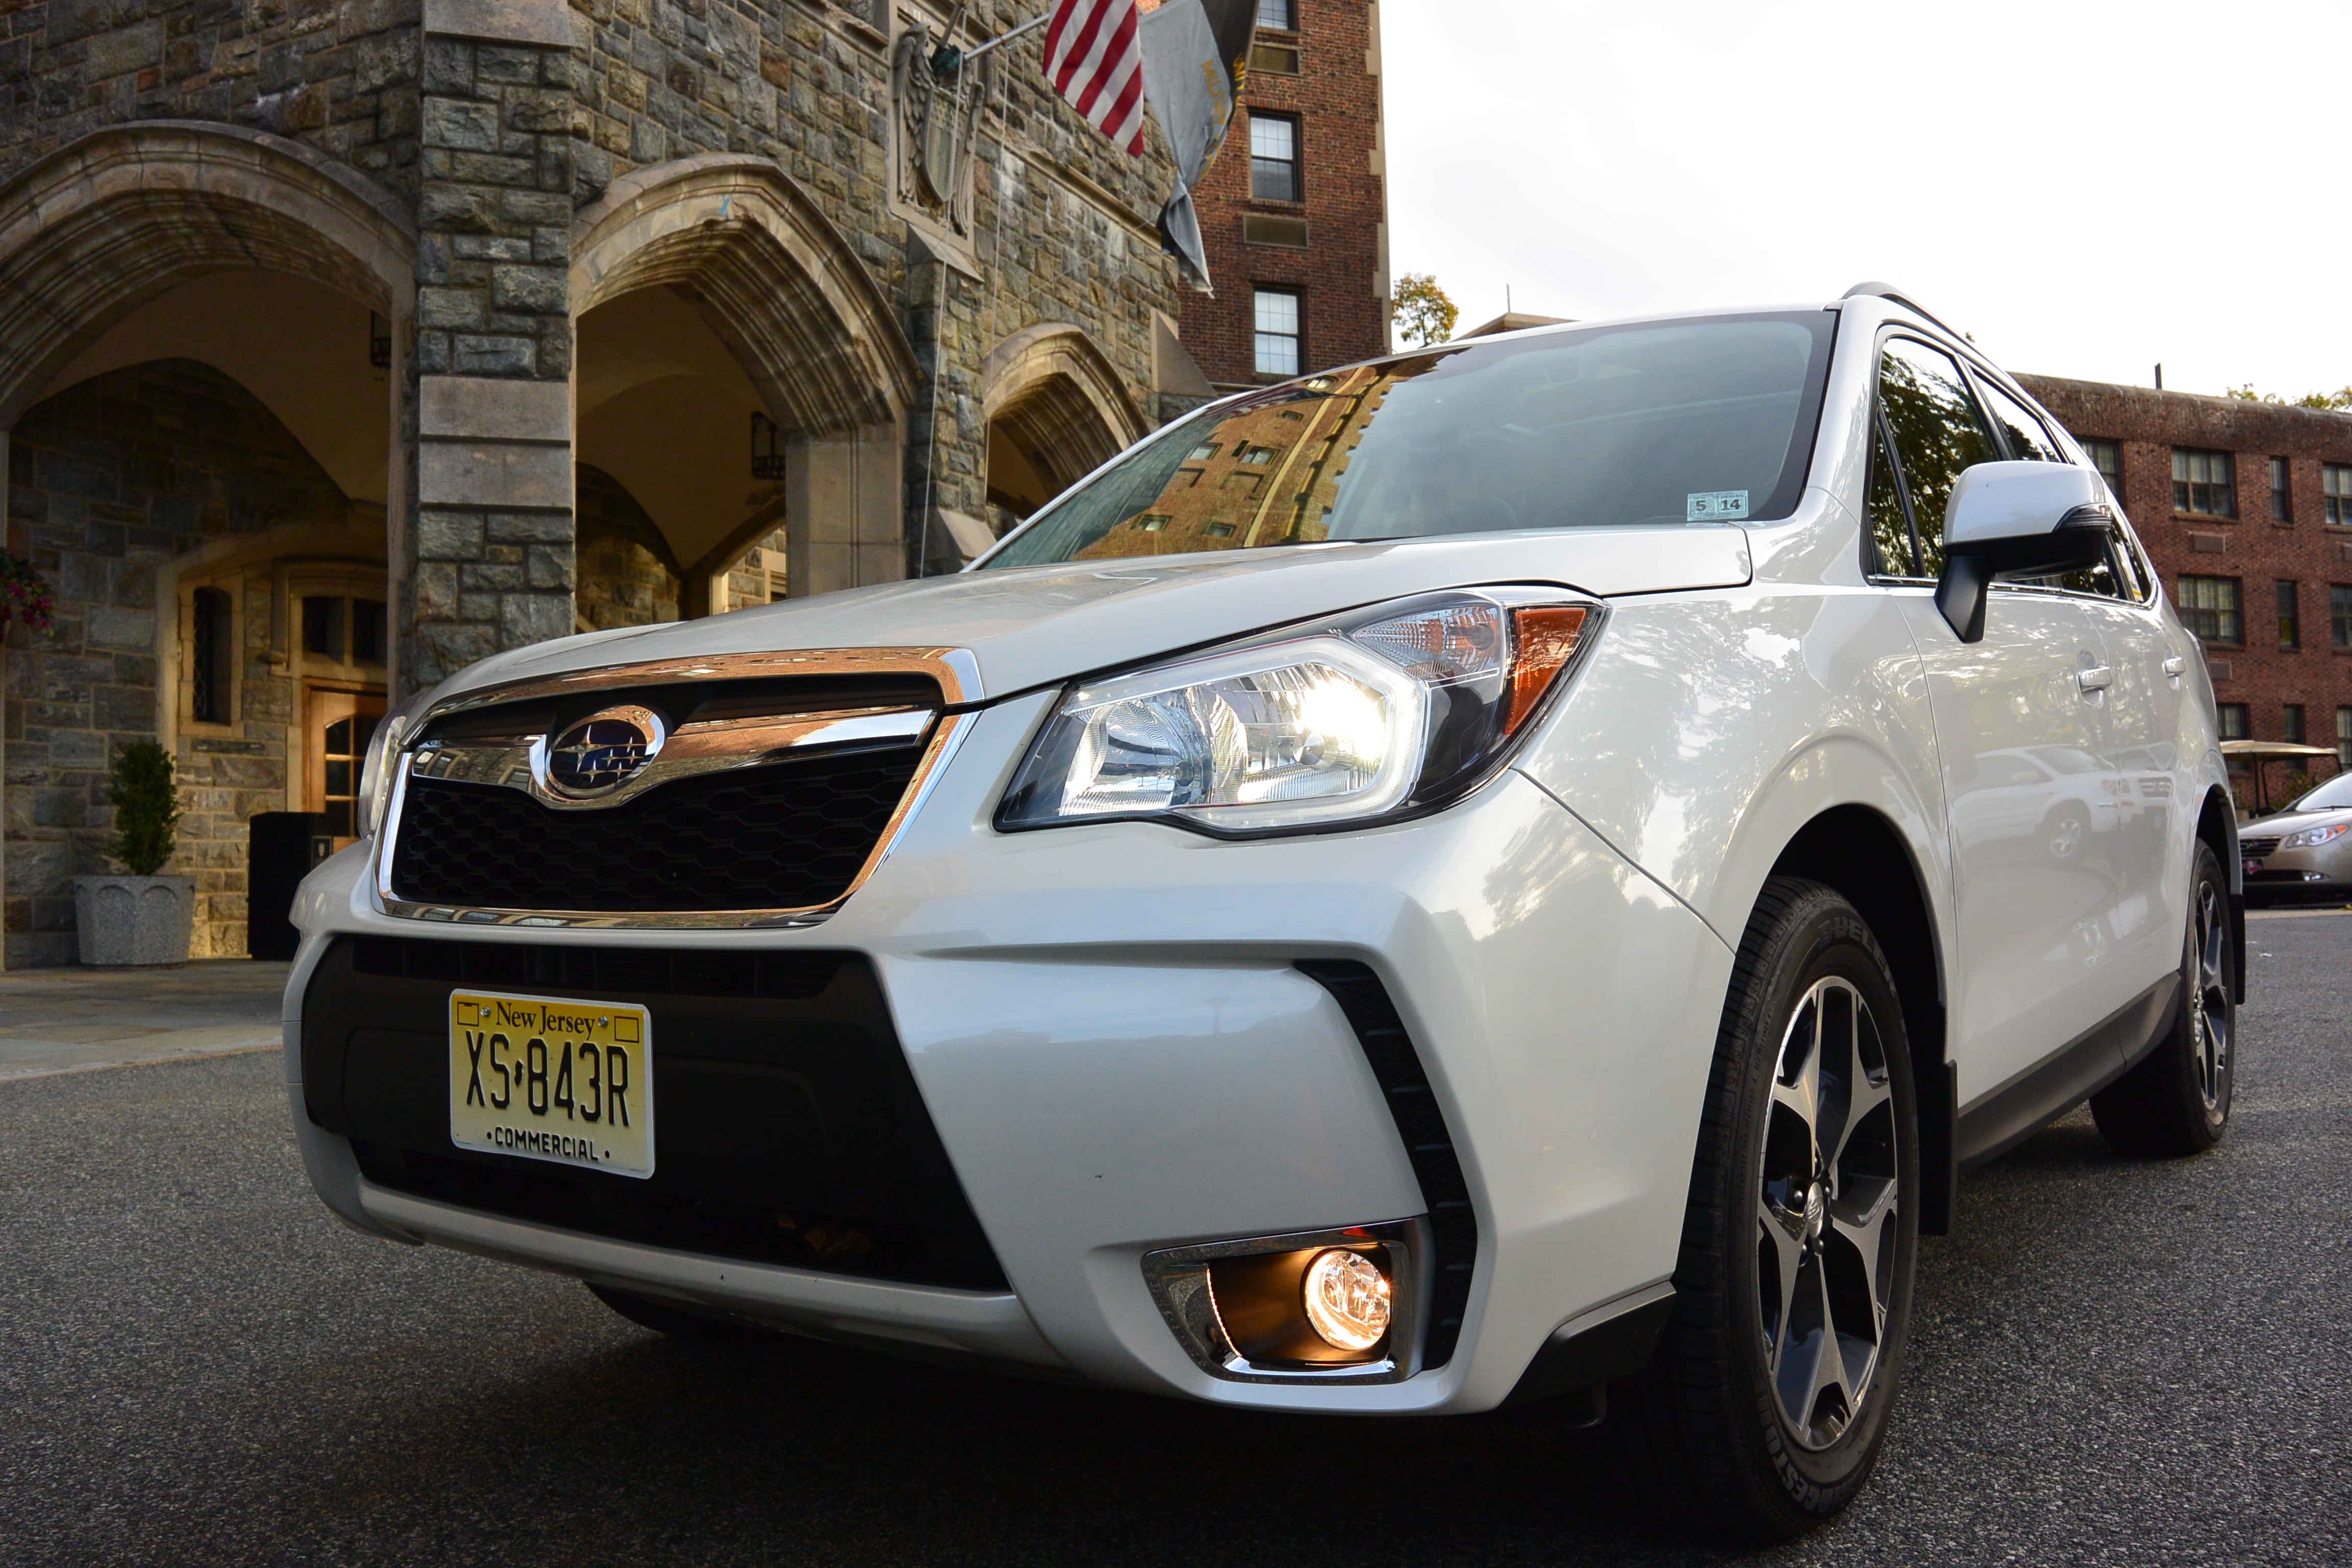 The 2014 Subaru Forester Xt Turbo Rules The Road Tales